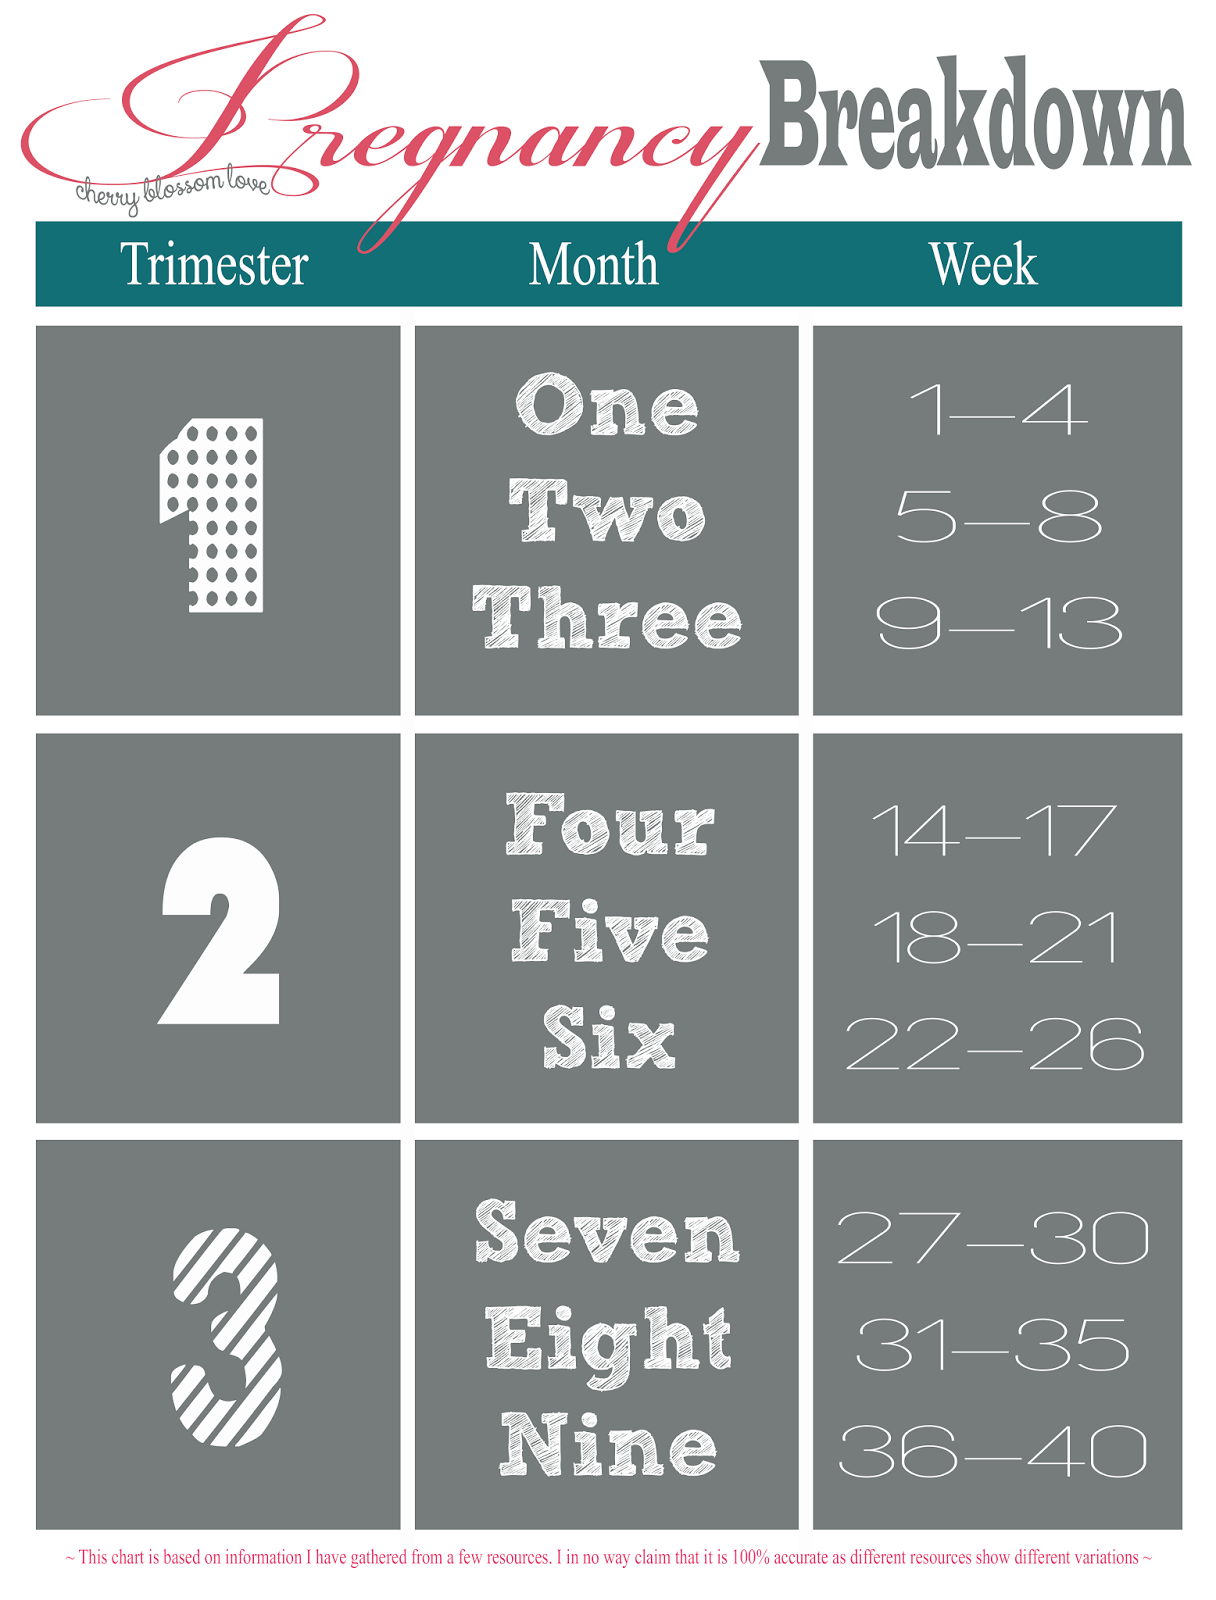 small resolution of pregnancy breakdown in trimesters months and weeks